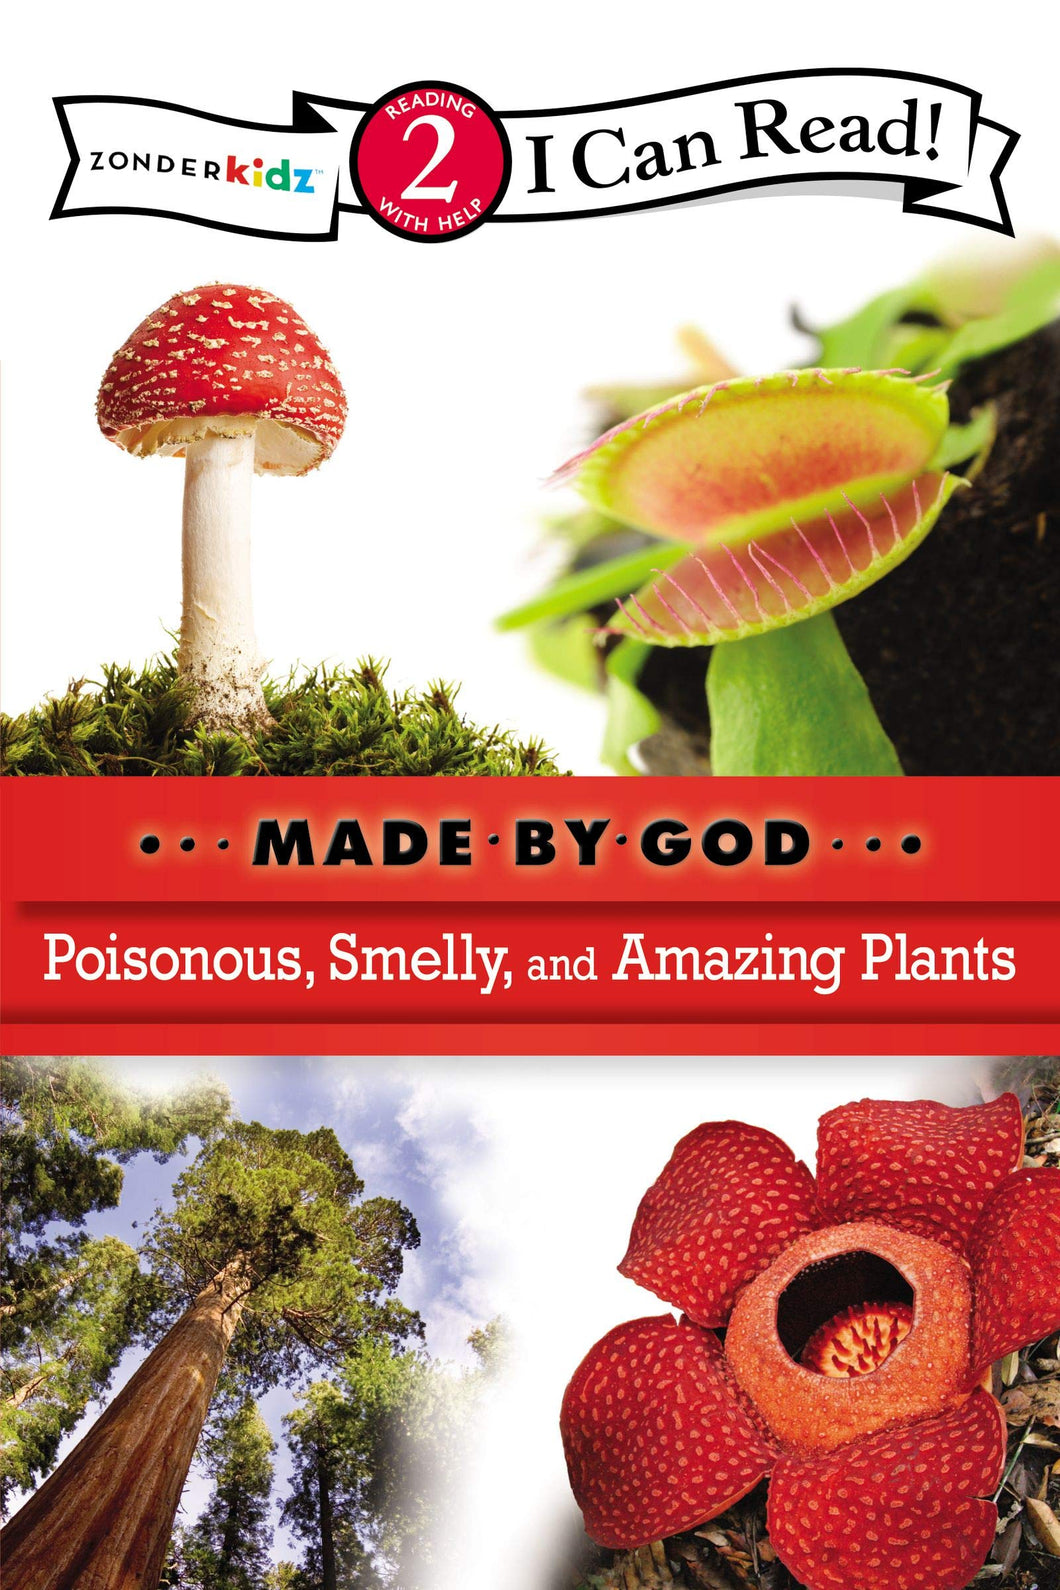 Made By God Poisonous, Smelly and Amazing Plants